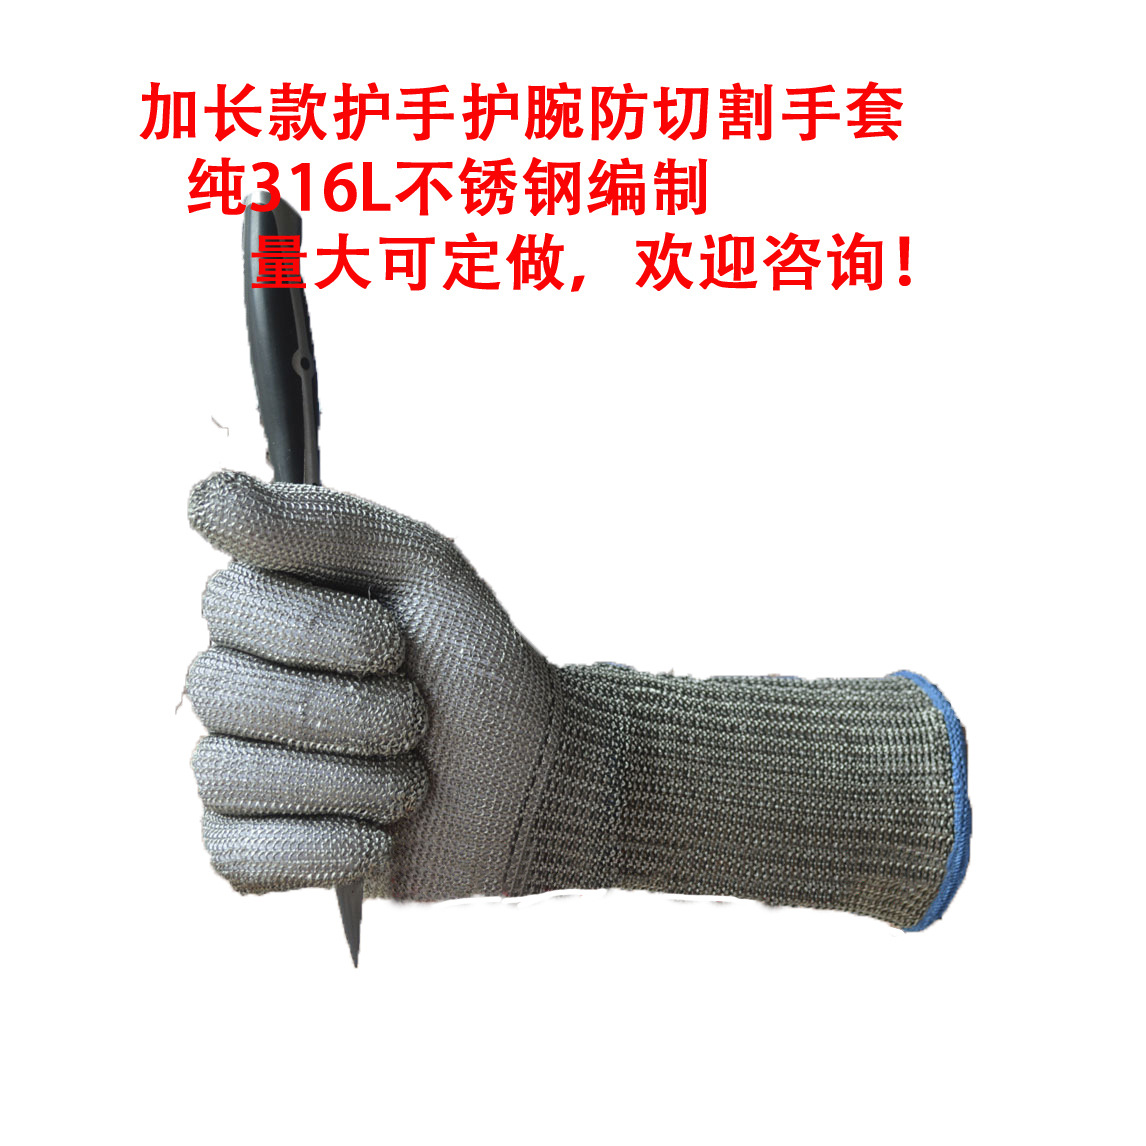 Stainless steel wire cuff longer section Gloves labor insurance protective metal iron cut-resistant gloves team losi mini 8ight longer section before and after 1 14 cvd 45 steel universal joints